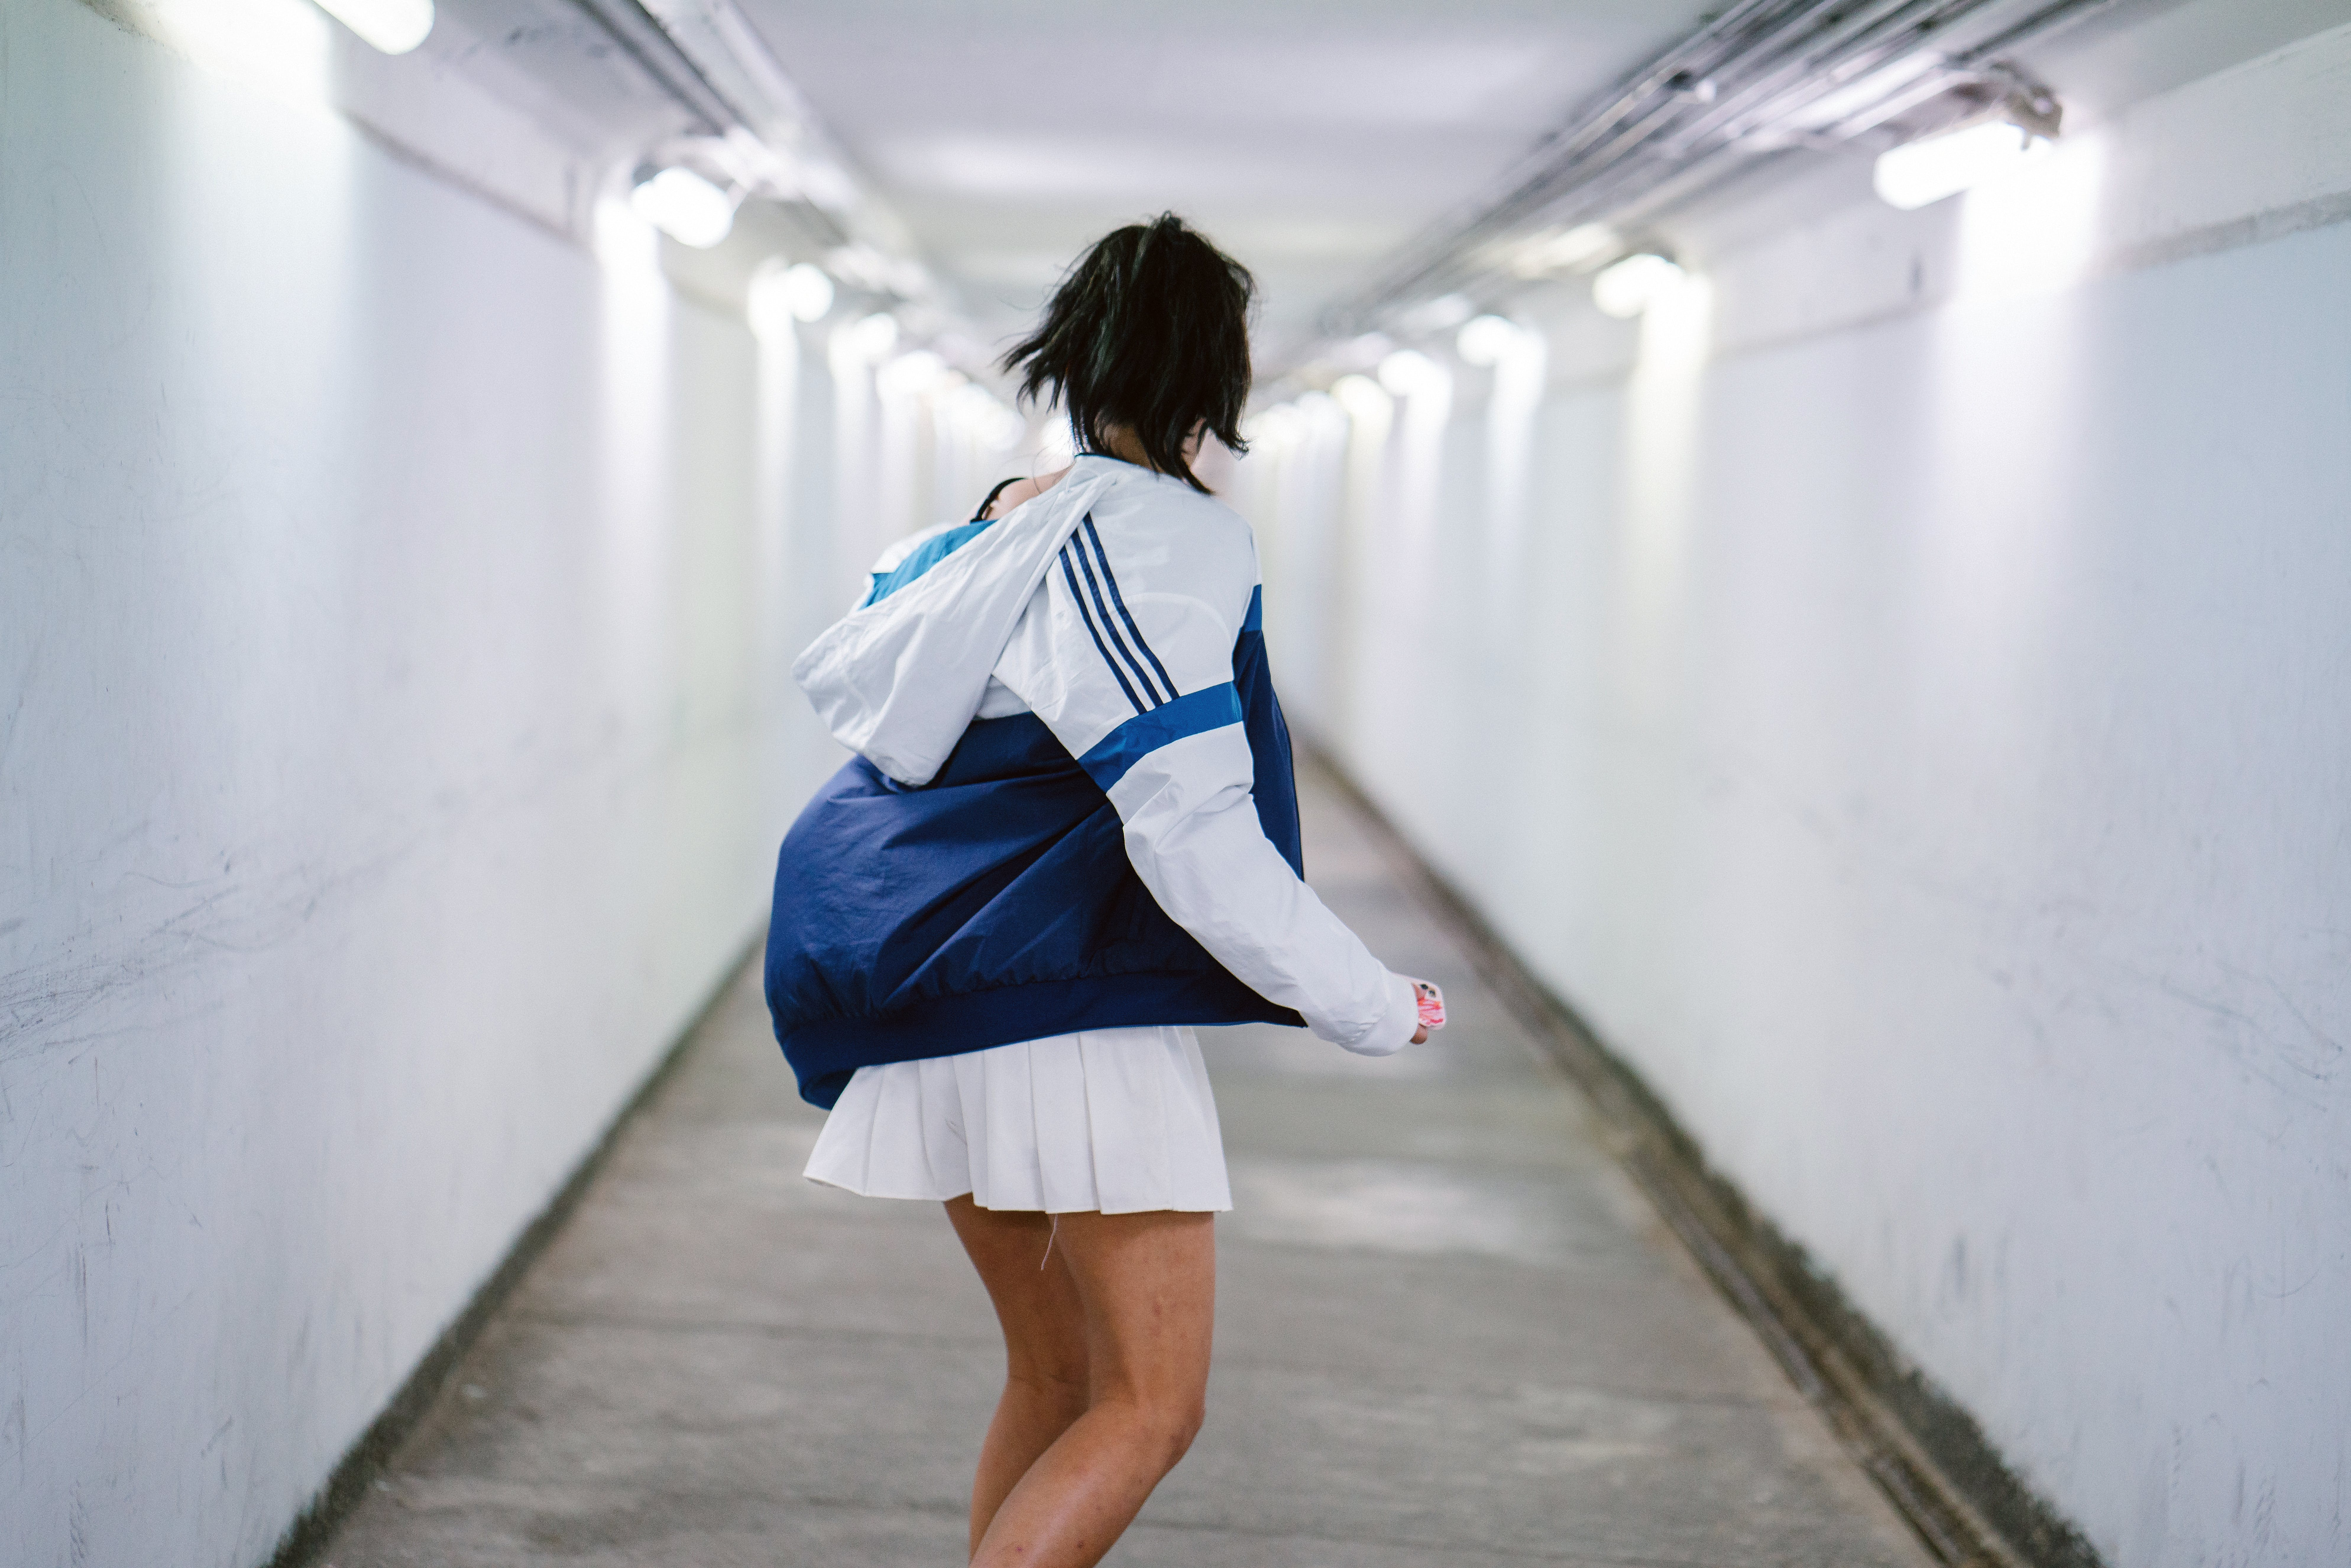 Woman in White Jacket at the Hallway